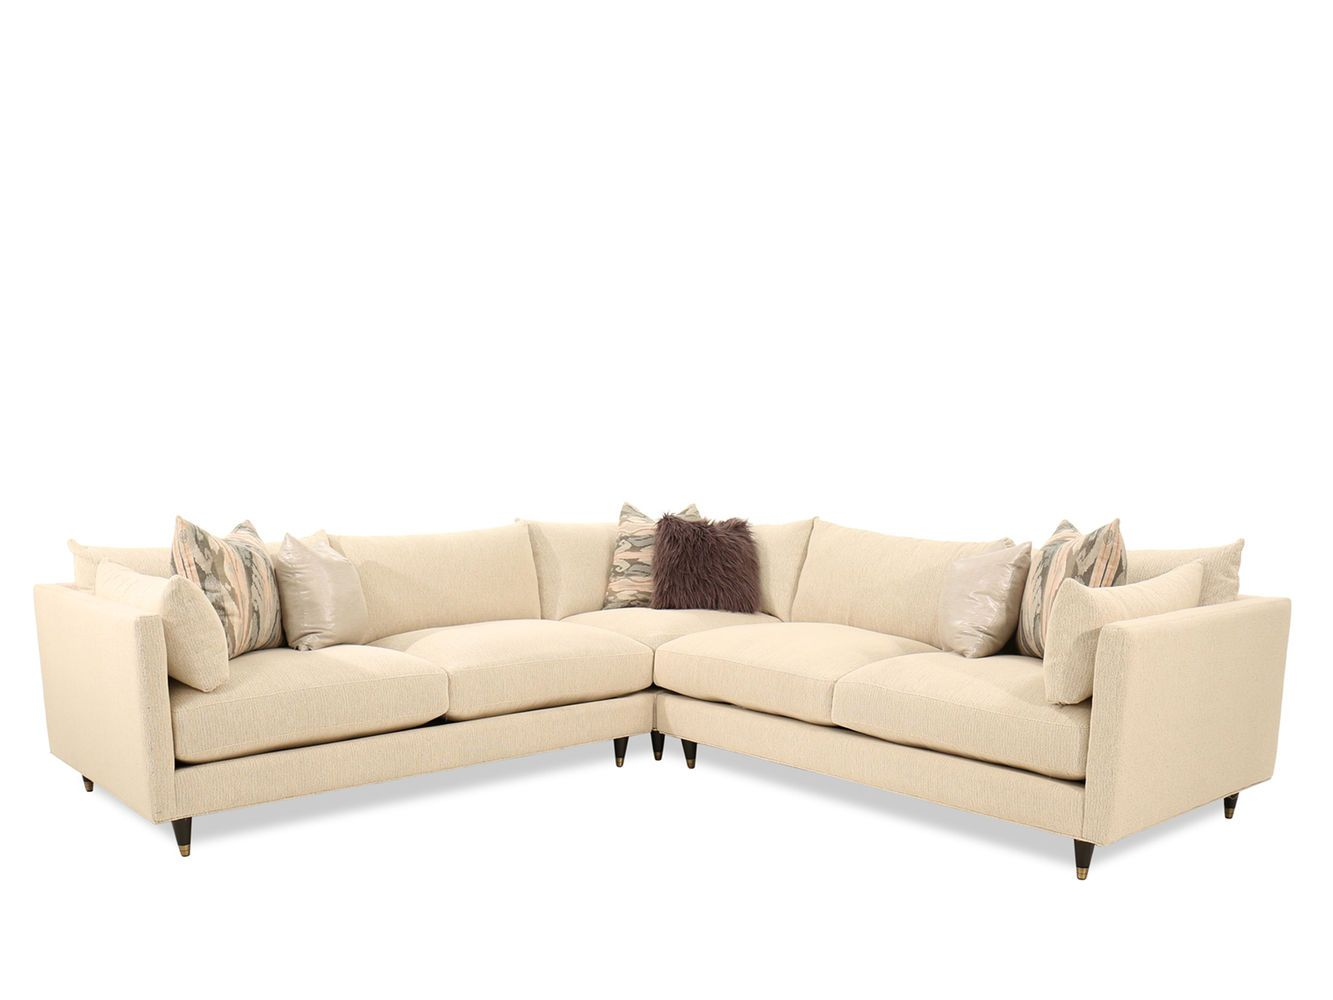 JLO 277/3PCSECT   Jonathan Louis Clarice Sectional | Mathis Brothers  Furniture | Home Stuff | Pinterest | Brothers Furniture, Living Rooms And  Sectional ...